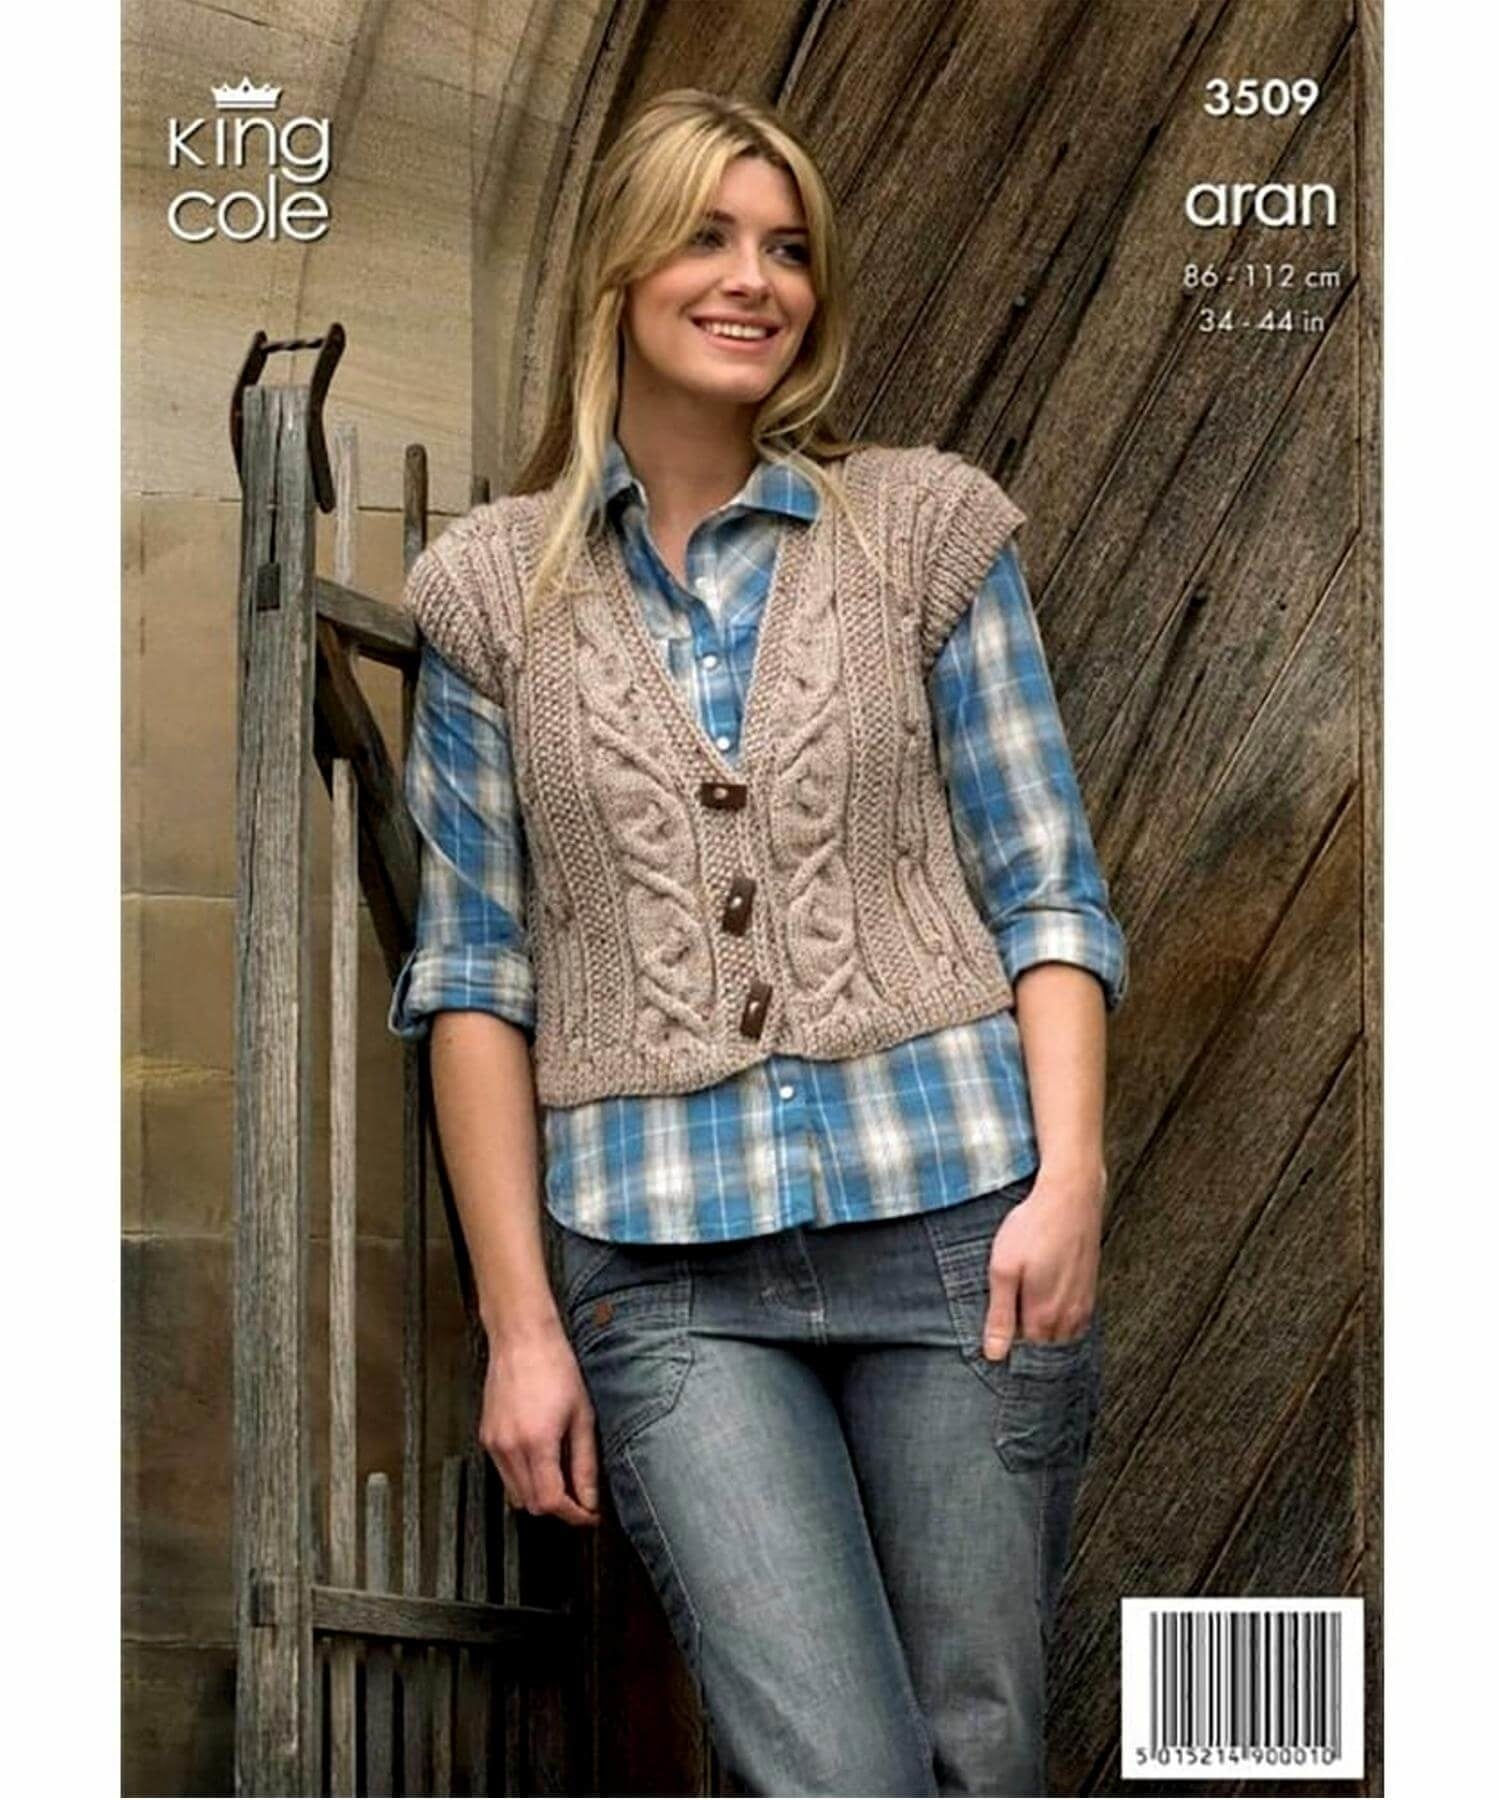 King Cole Aran Pattern 3509 - [Springwools] - Knitting - Irish Gifts